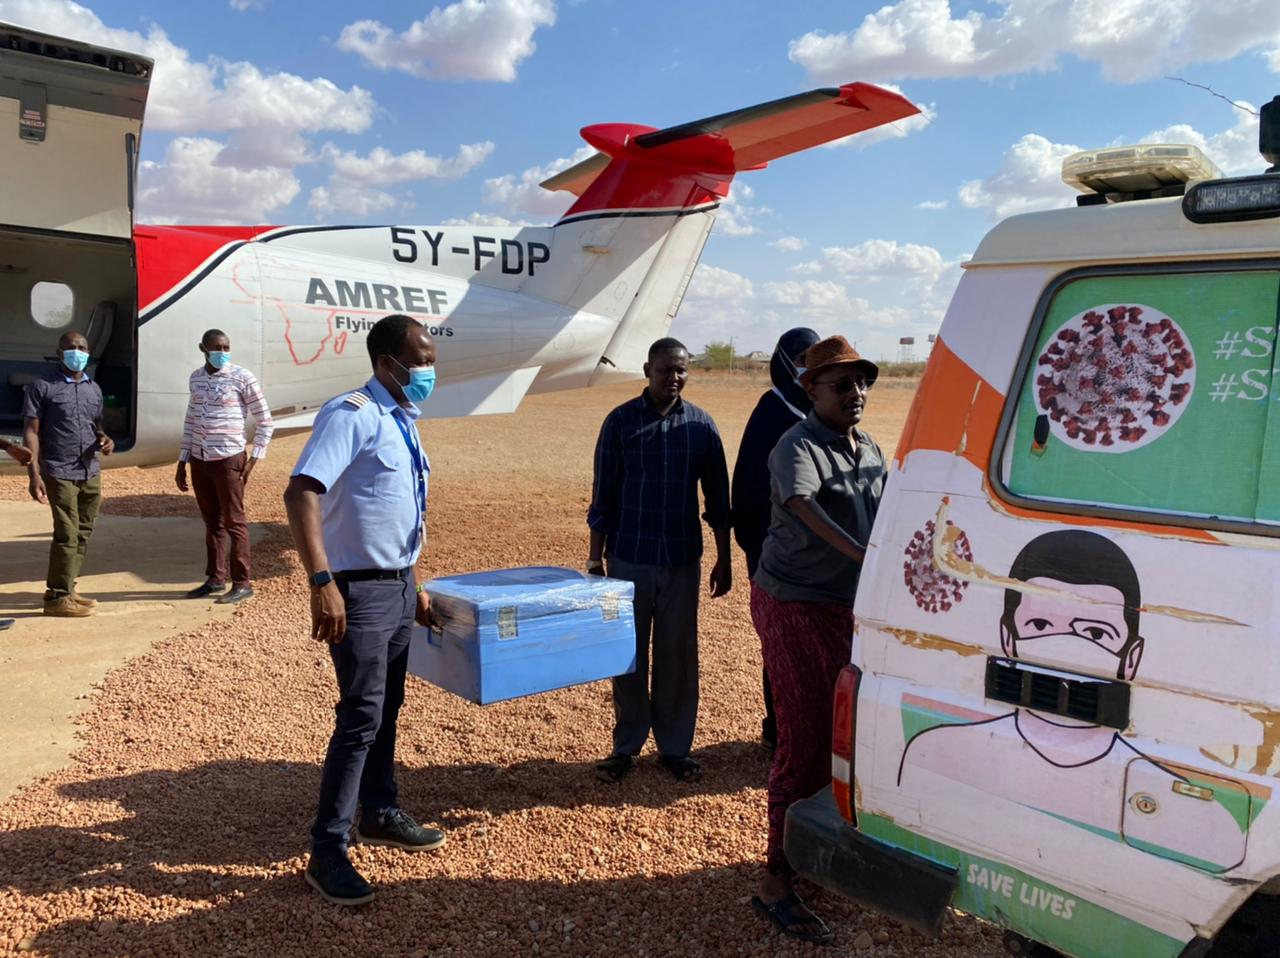 AMREF FLYING DOCTORS TRANSPORTS COVID-19 VACCINES TO MANDERA COUNTY